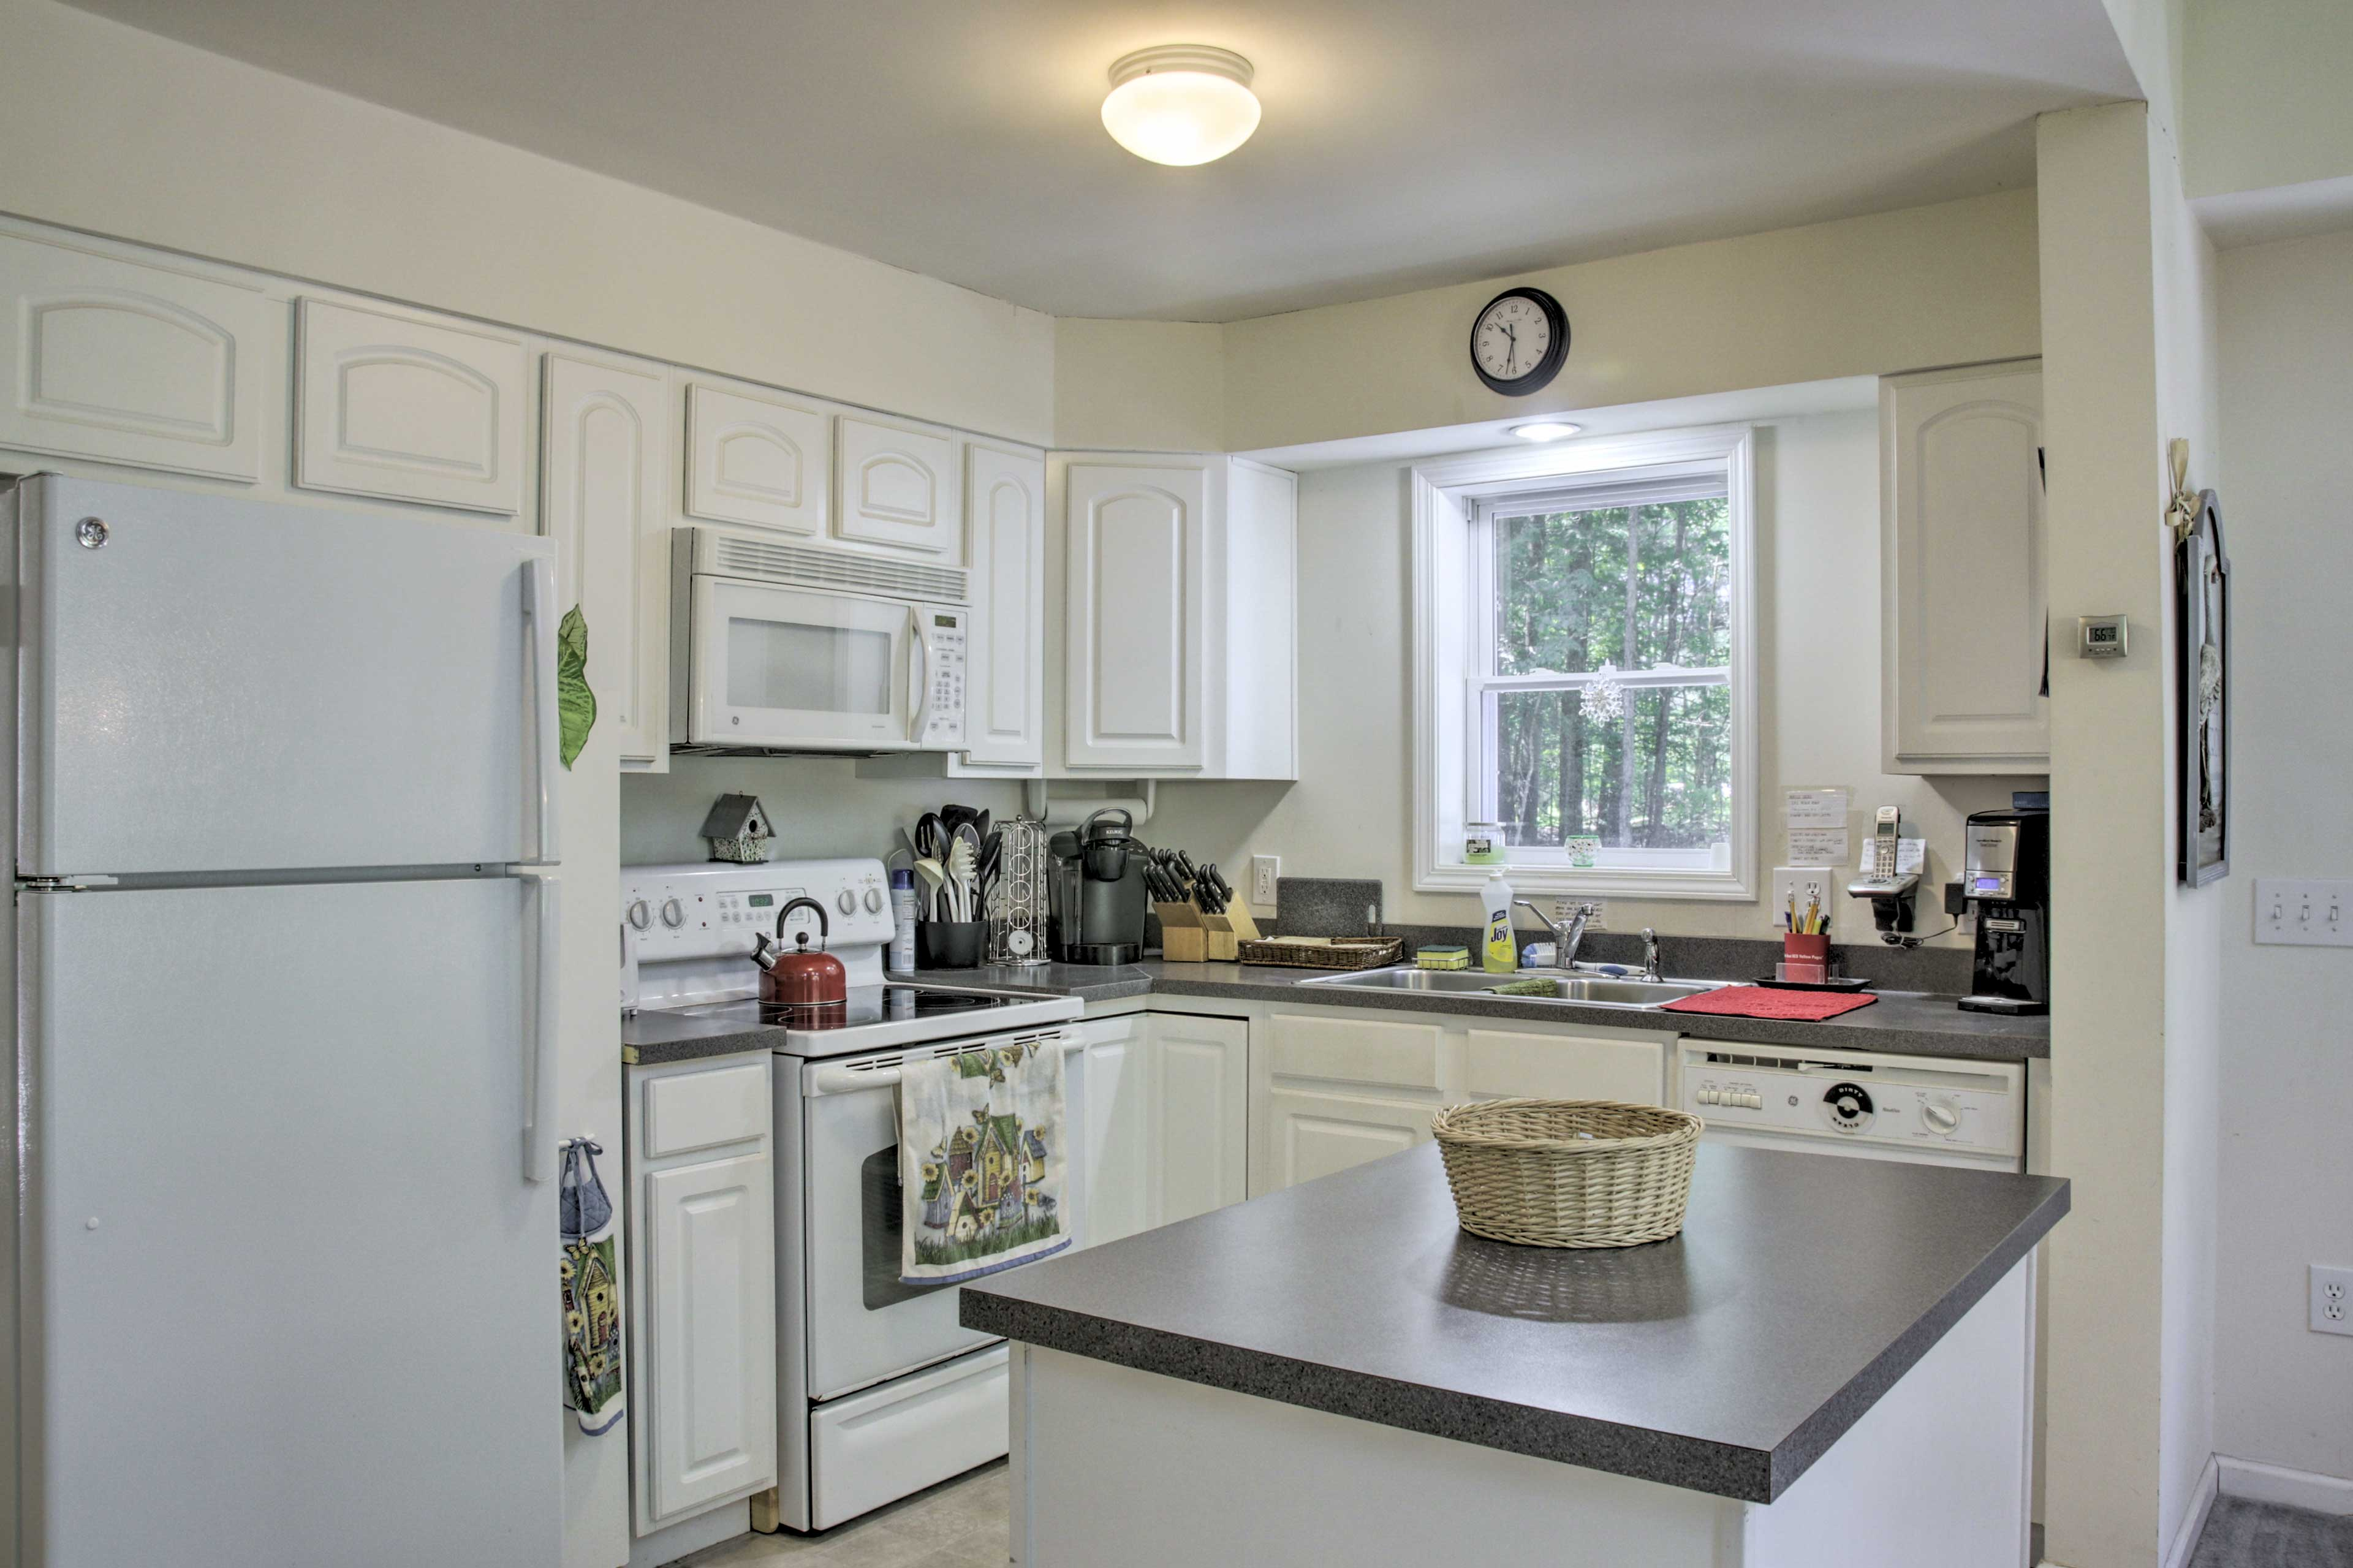 Fully Equipped Kitchen   Full Knife Set   Trash Bags/Paper Towels Provided